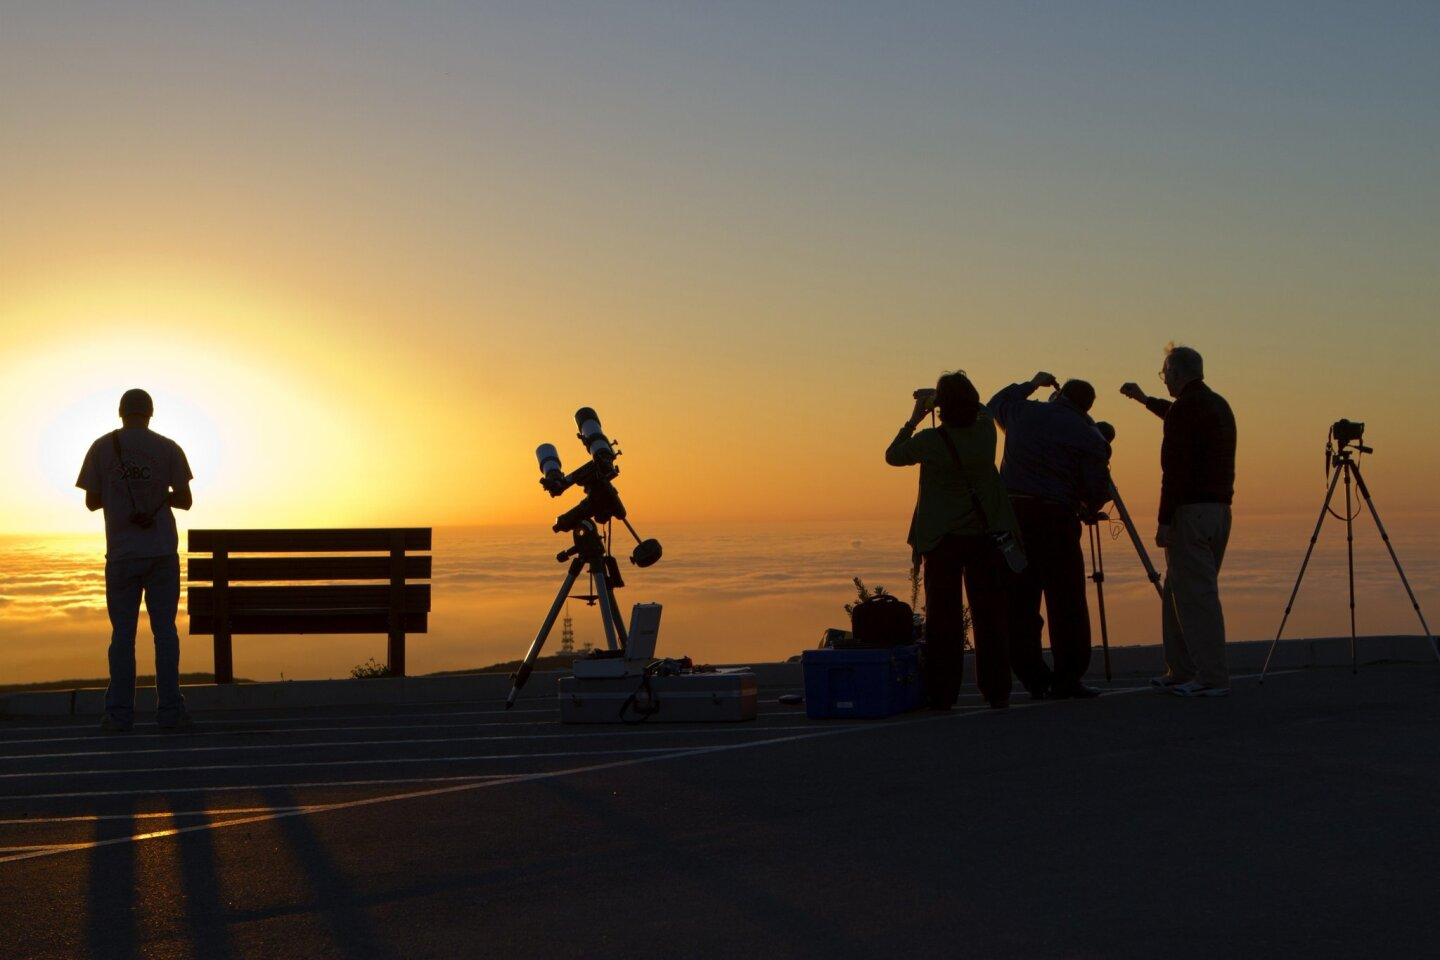 People out to view the Pan-STARRS comet